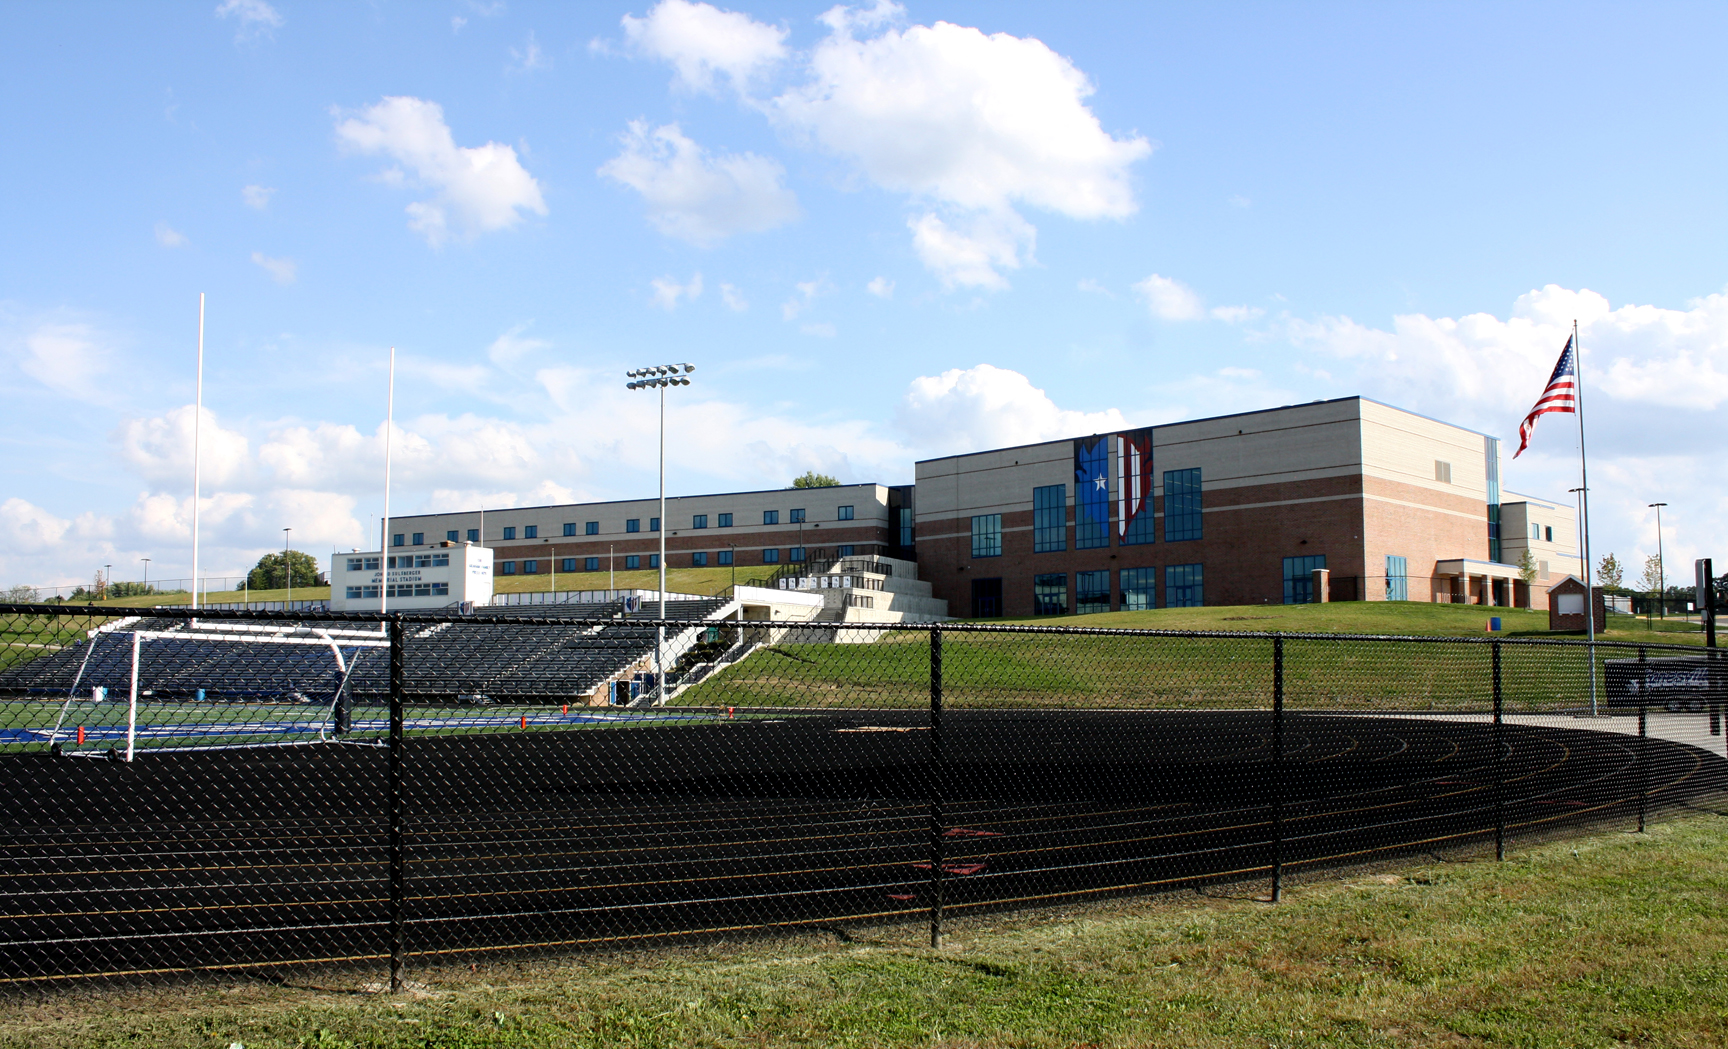 zanesville-high-school-city-schools-ohio-archtectural-apg-architects-fitness-center-ofcc